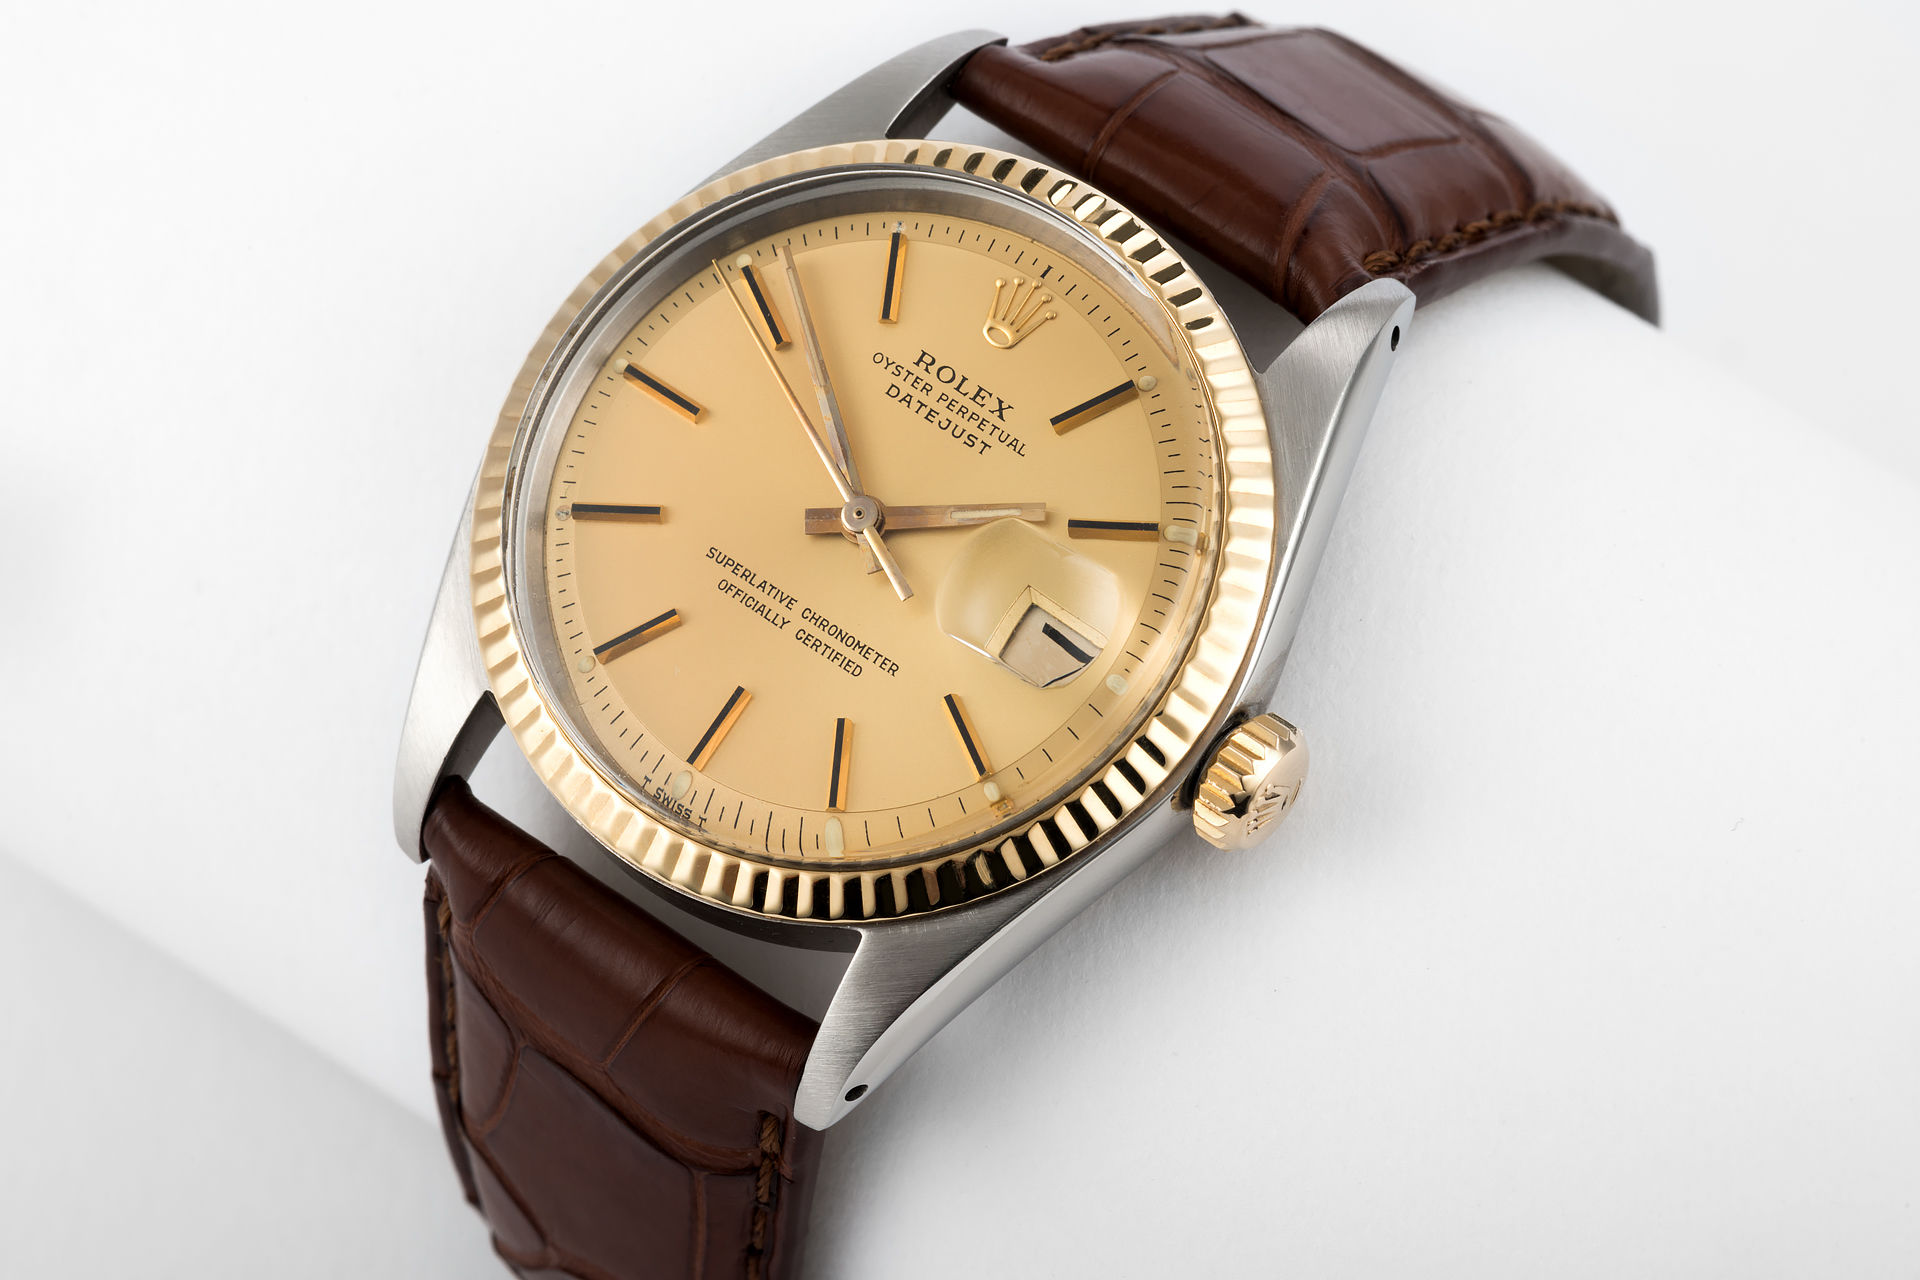 ref 1601 | 'Pie Pan Dial' | Rolex Datejust